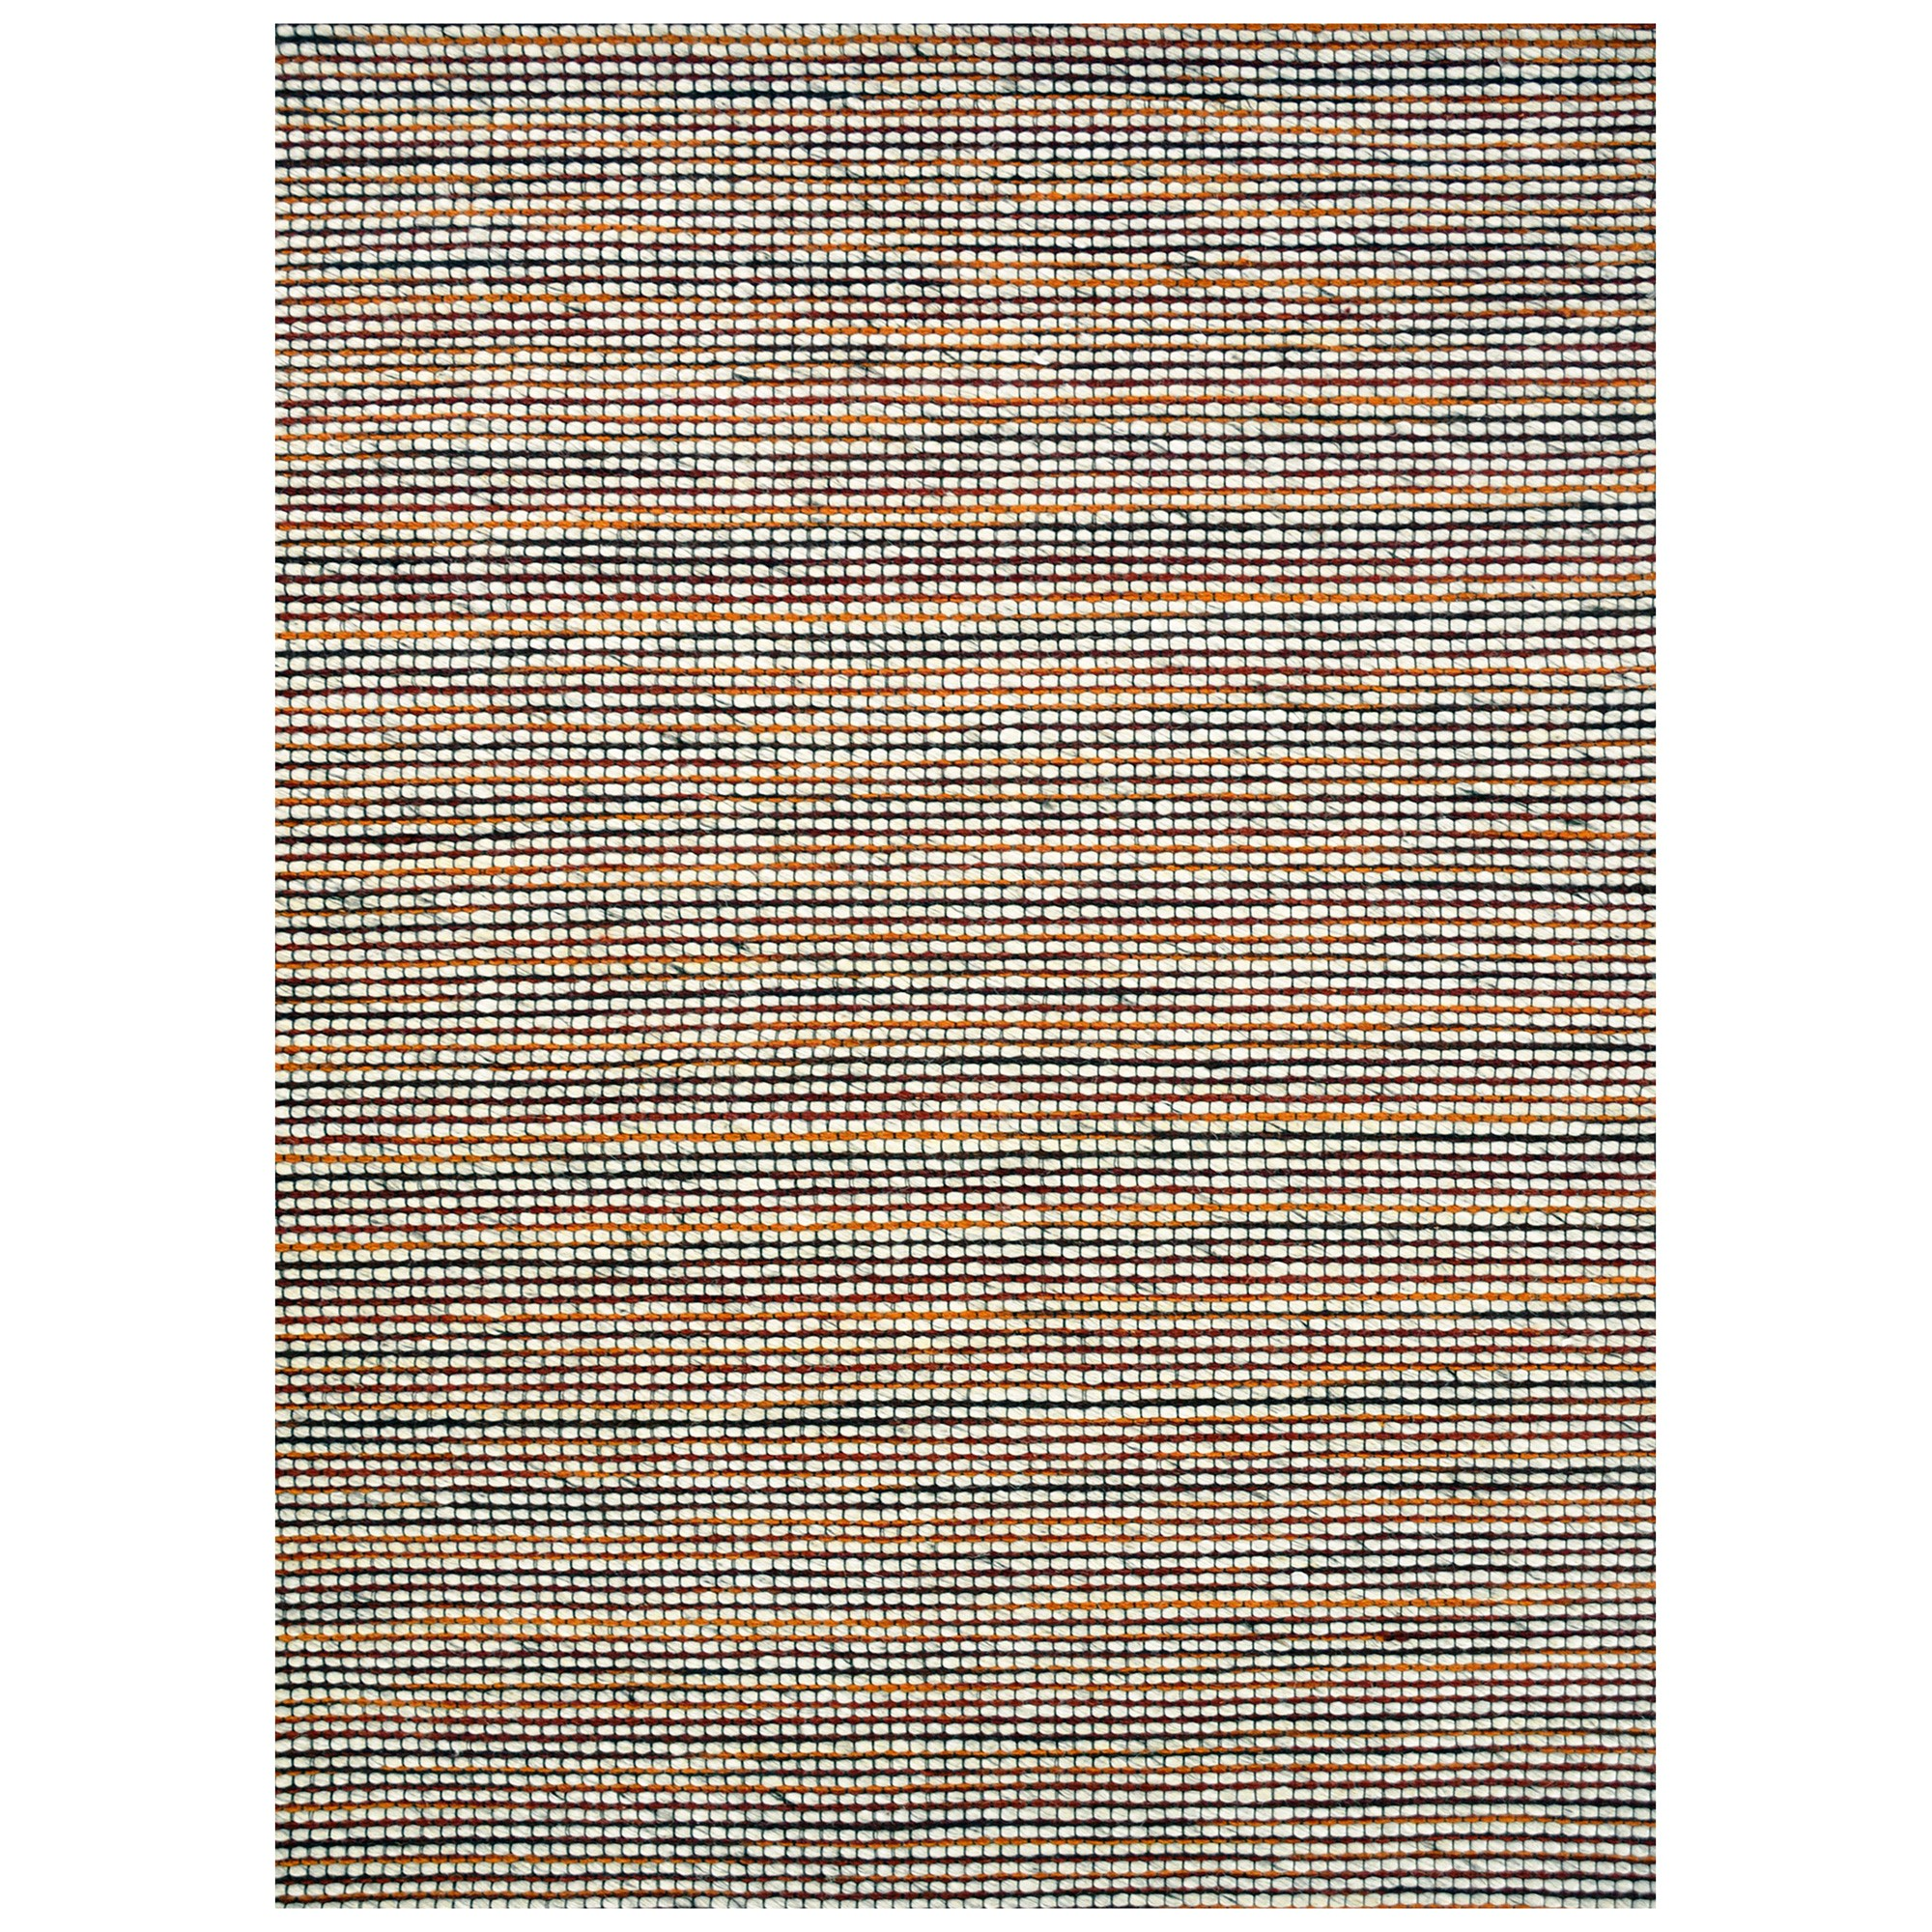 Burlin Handmade Wool Rug, 90x60cm, Ivory / Red